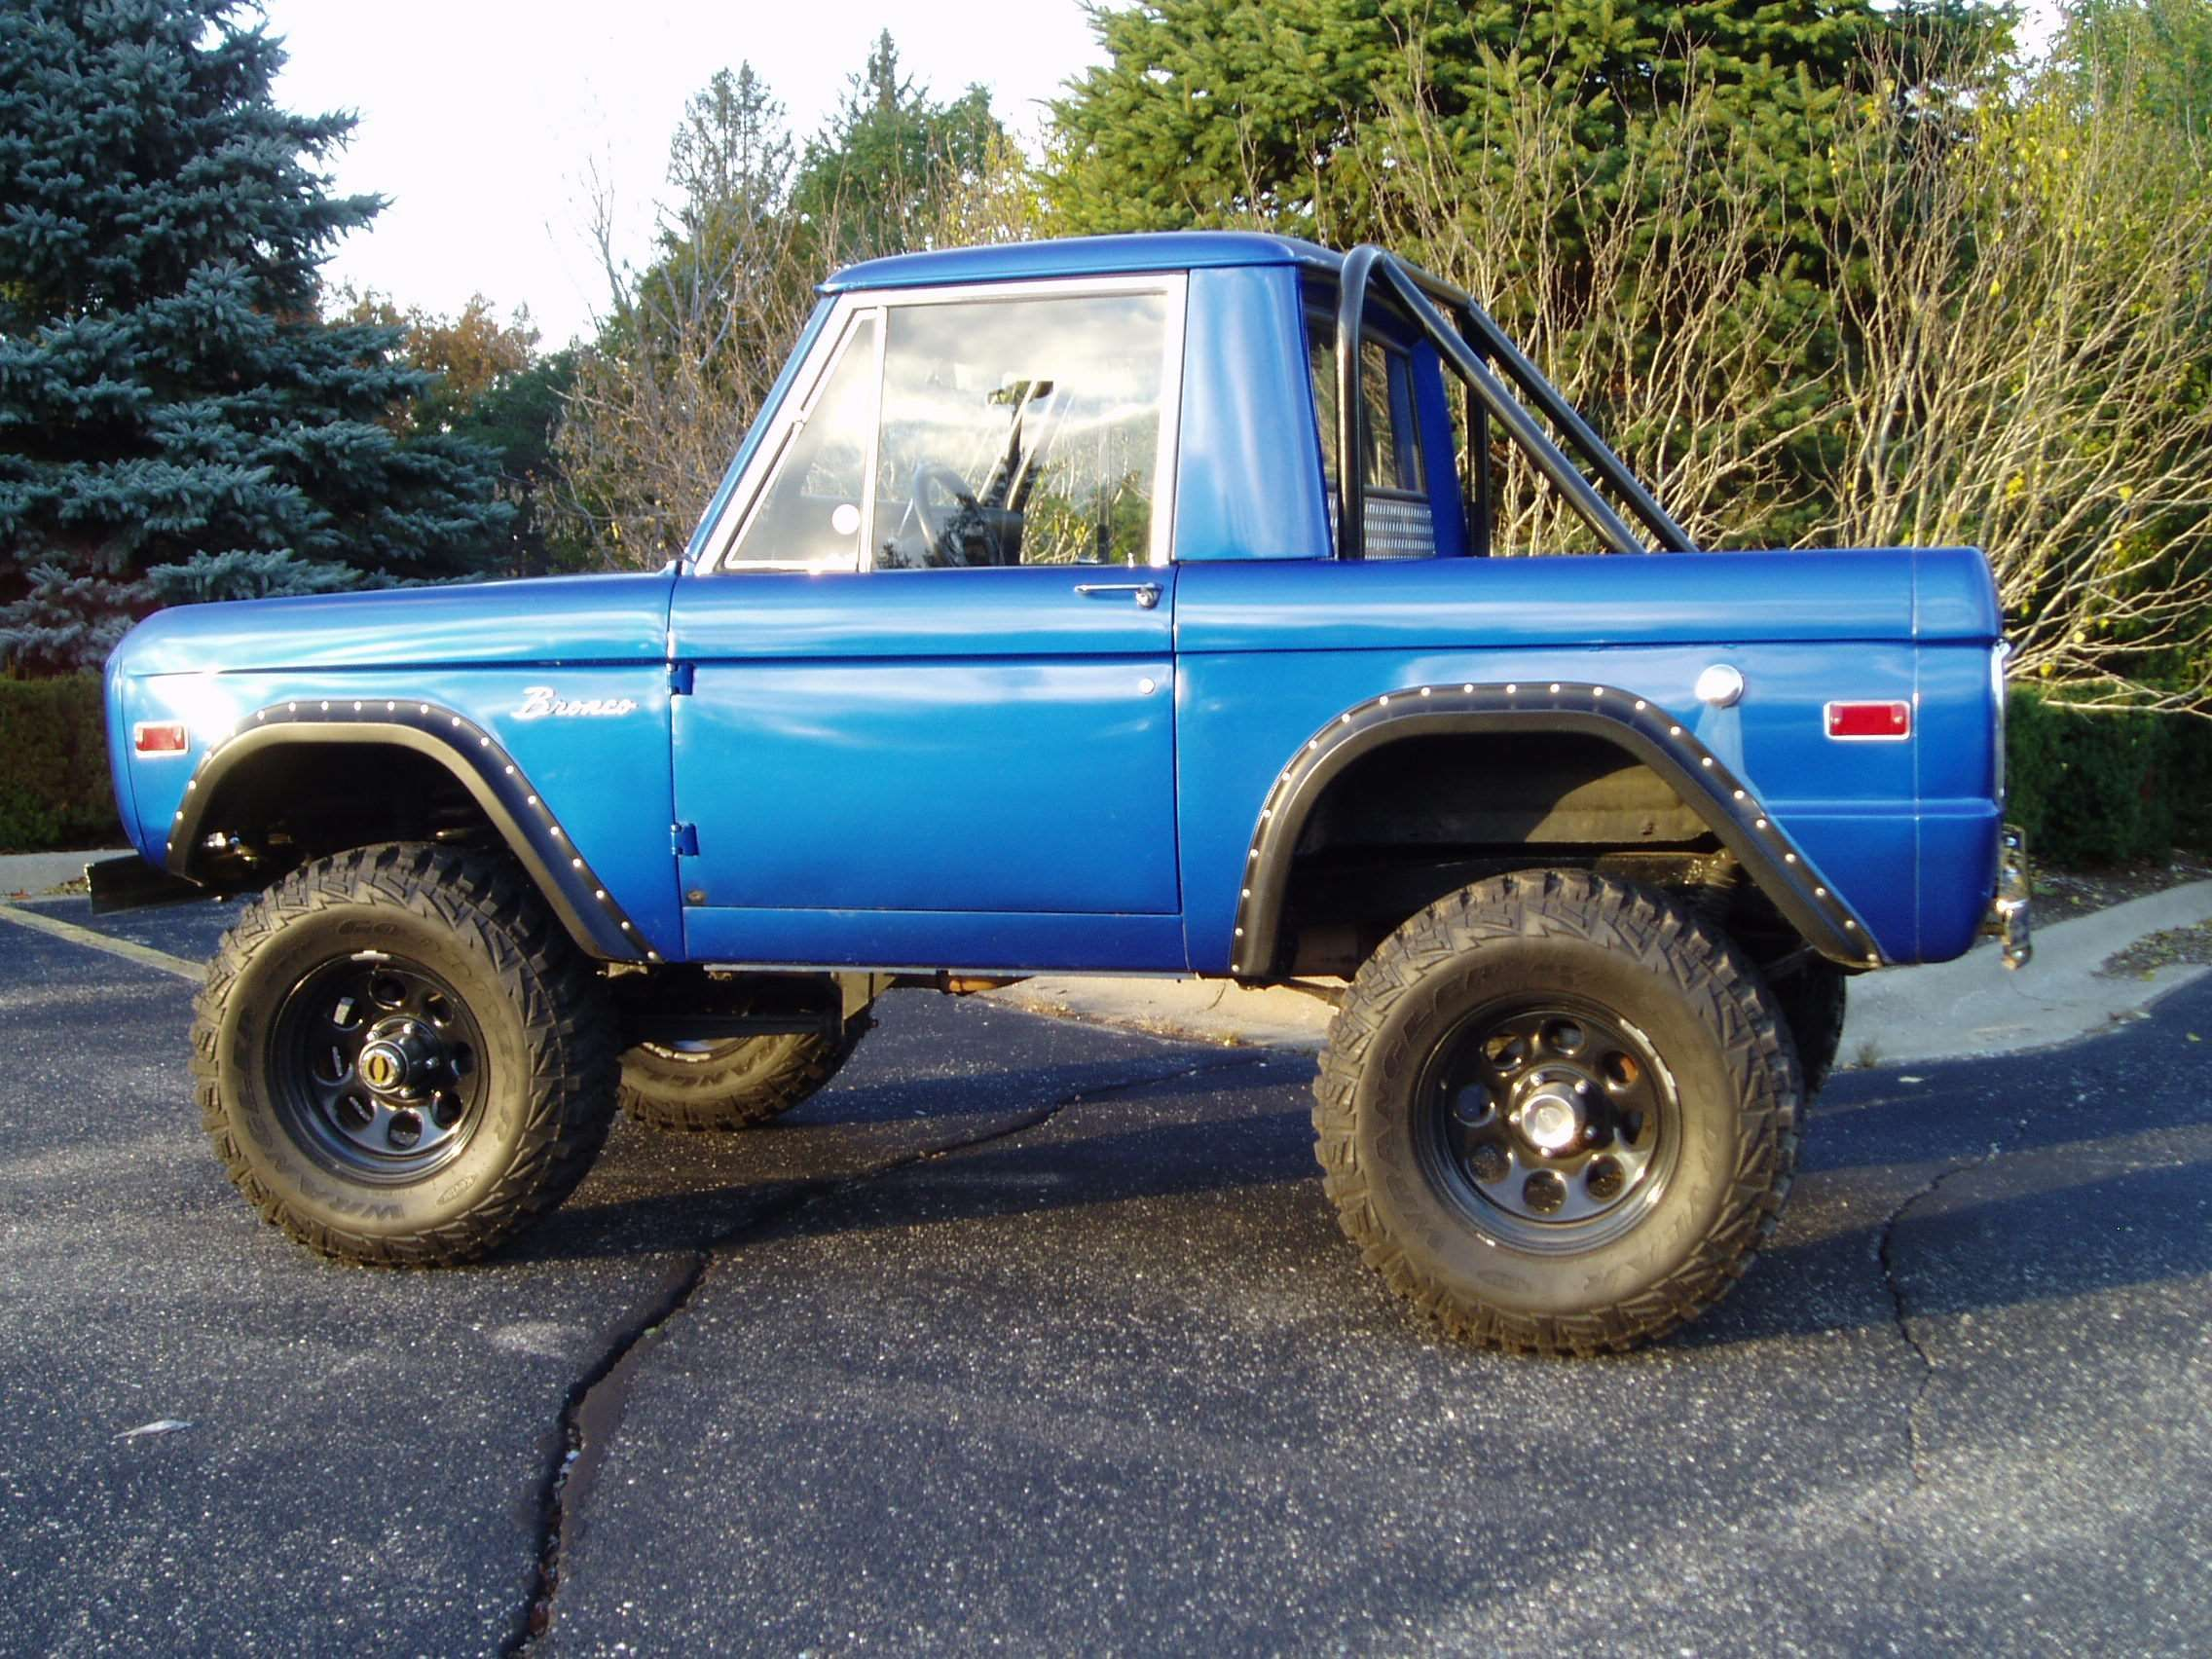 Make Ford Model Bronco Year 1976 Body Style 4WD/SUVs